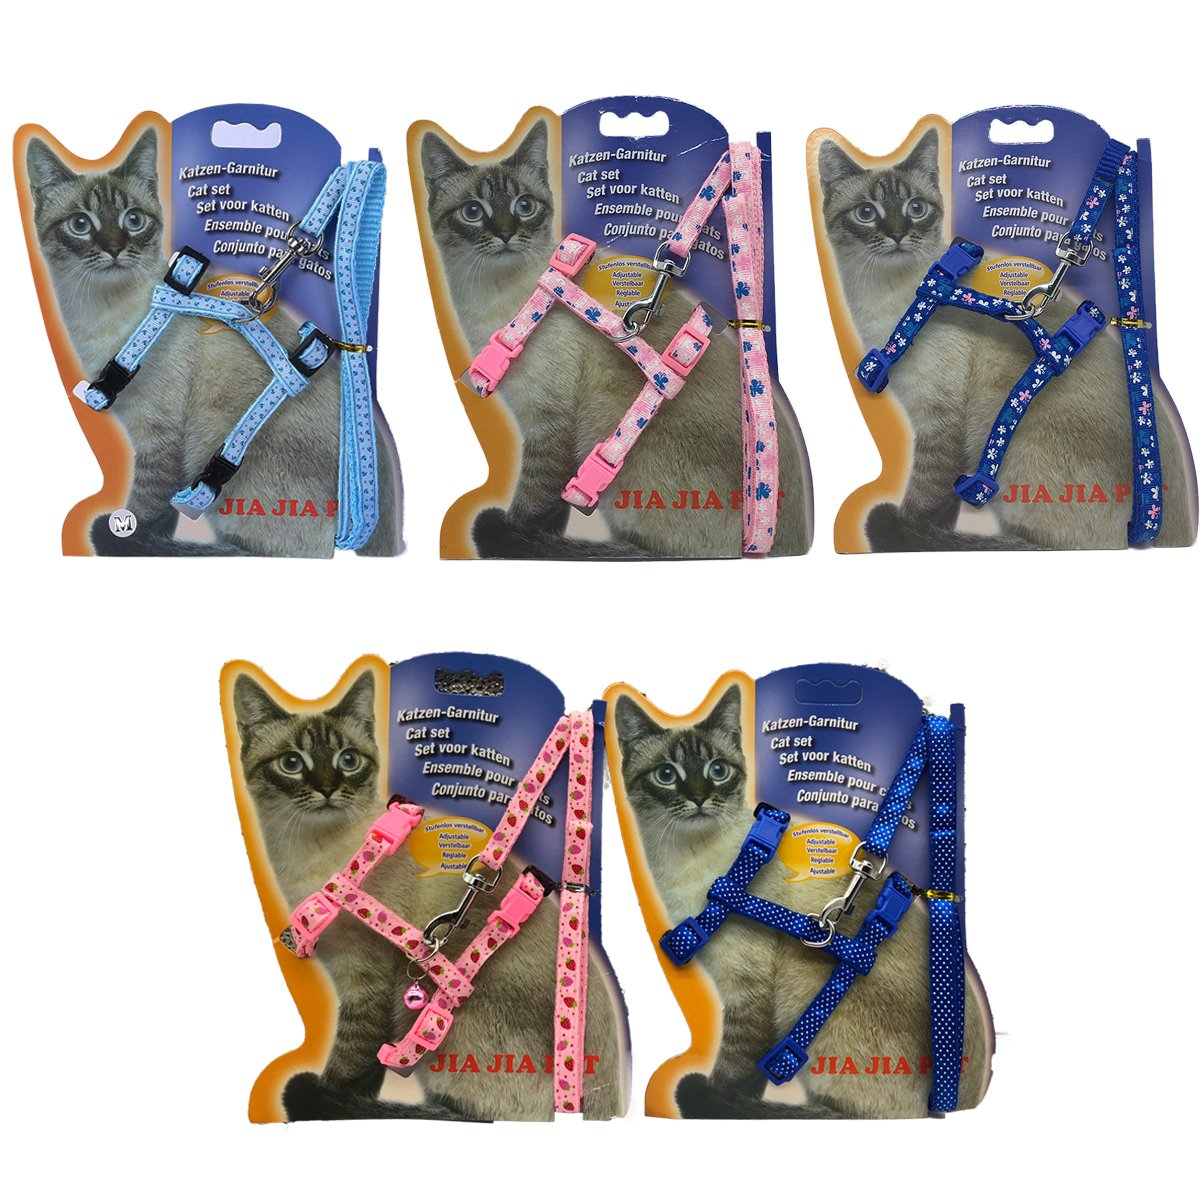 WORDERFUL Cat Harness and Leash Set Adjustable Pet Harness Vest 2 Pack for Small Animal Pattern Random by WORDERFUL (Image #2)